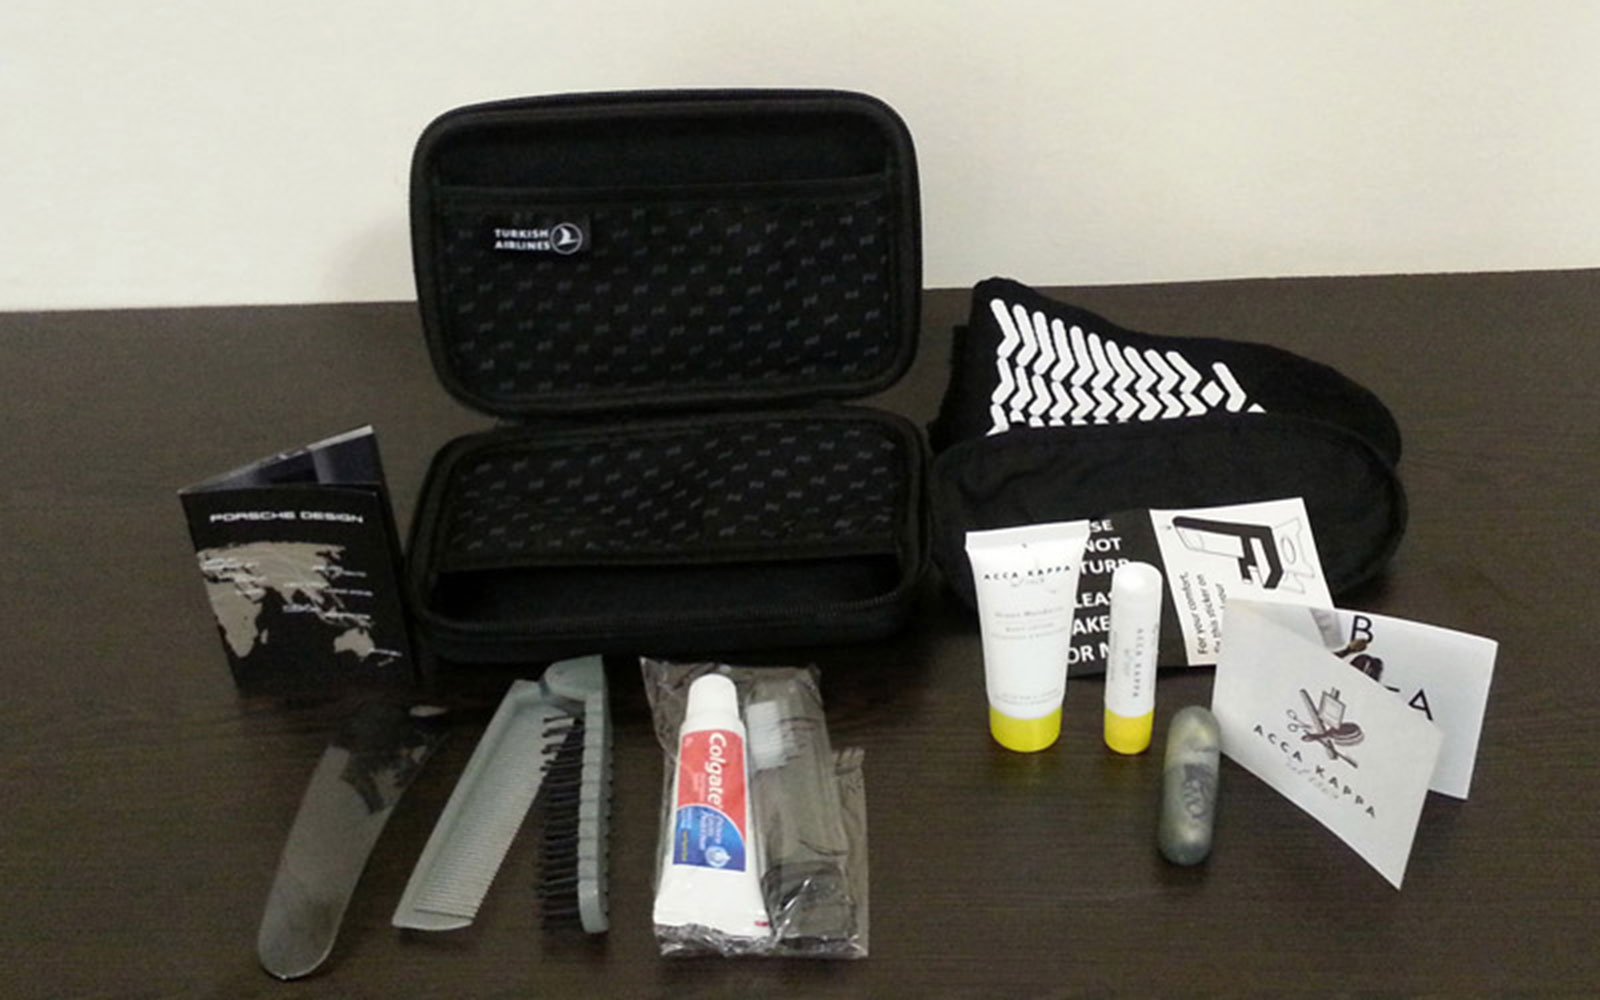 Turkish Airlines: First Class Porsche Amenity Kit